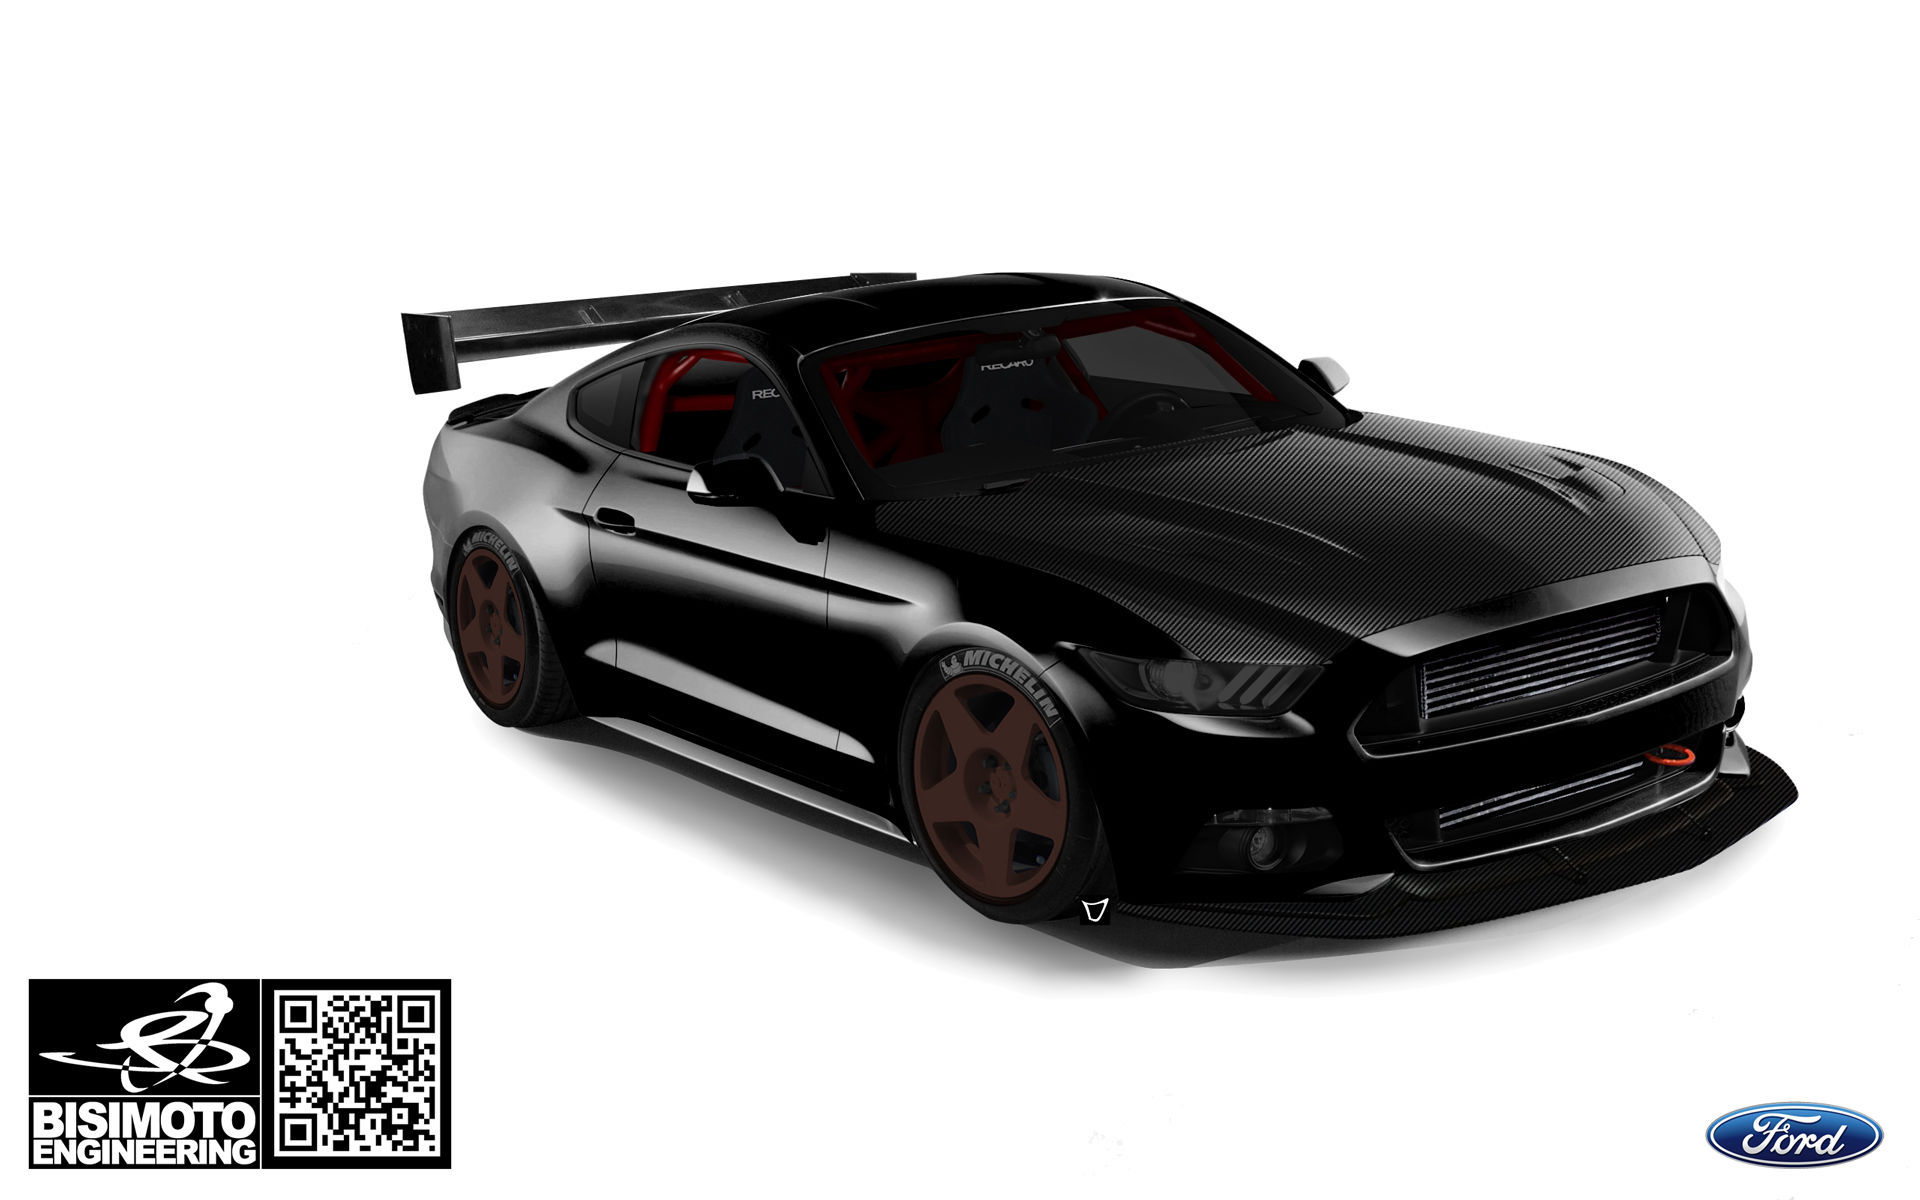 2015 Ford Mustang | 2015 Mustang EcoBoost by BisiMoto